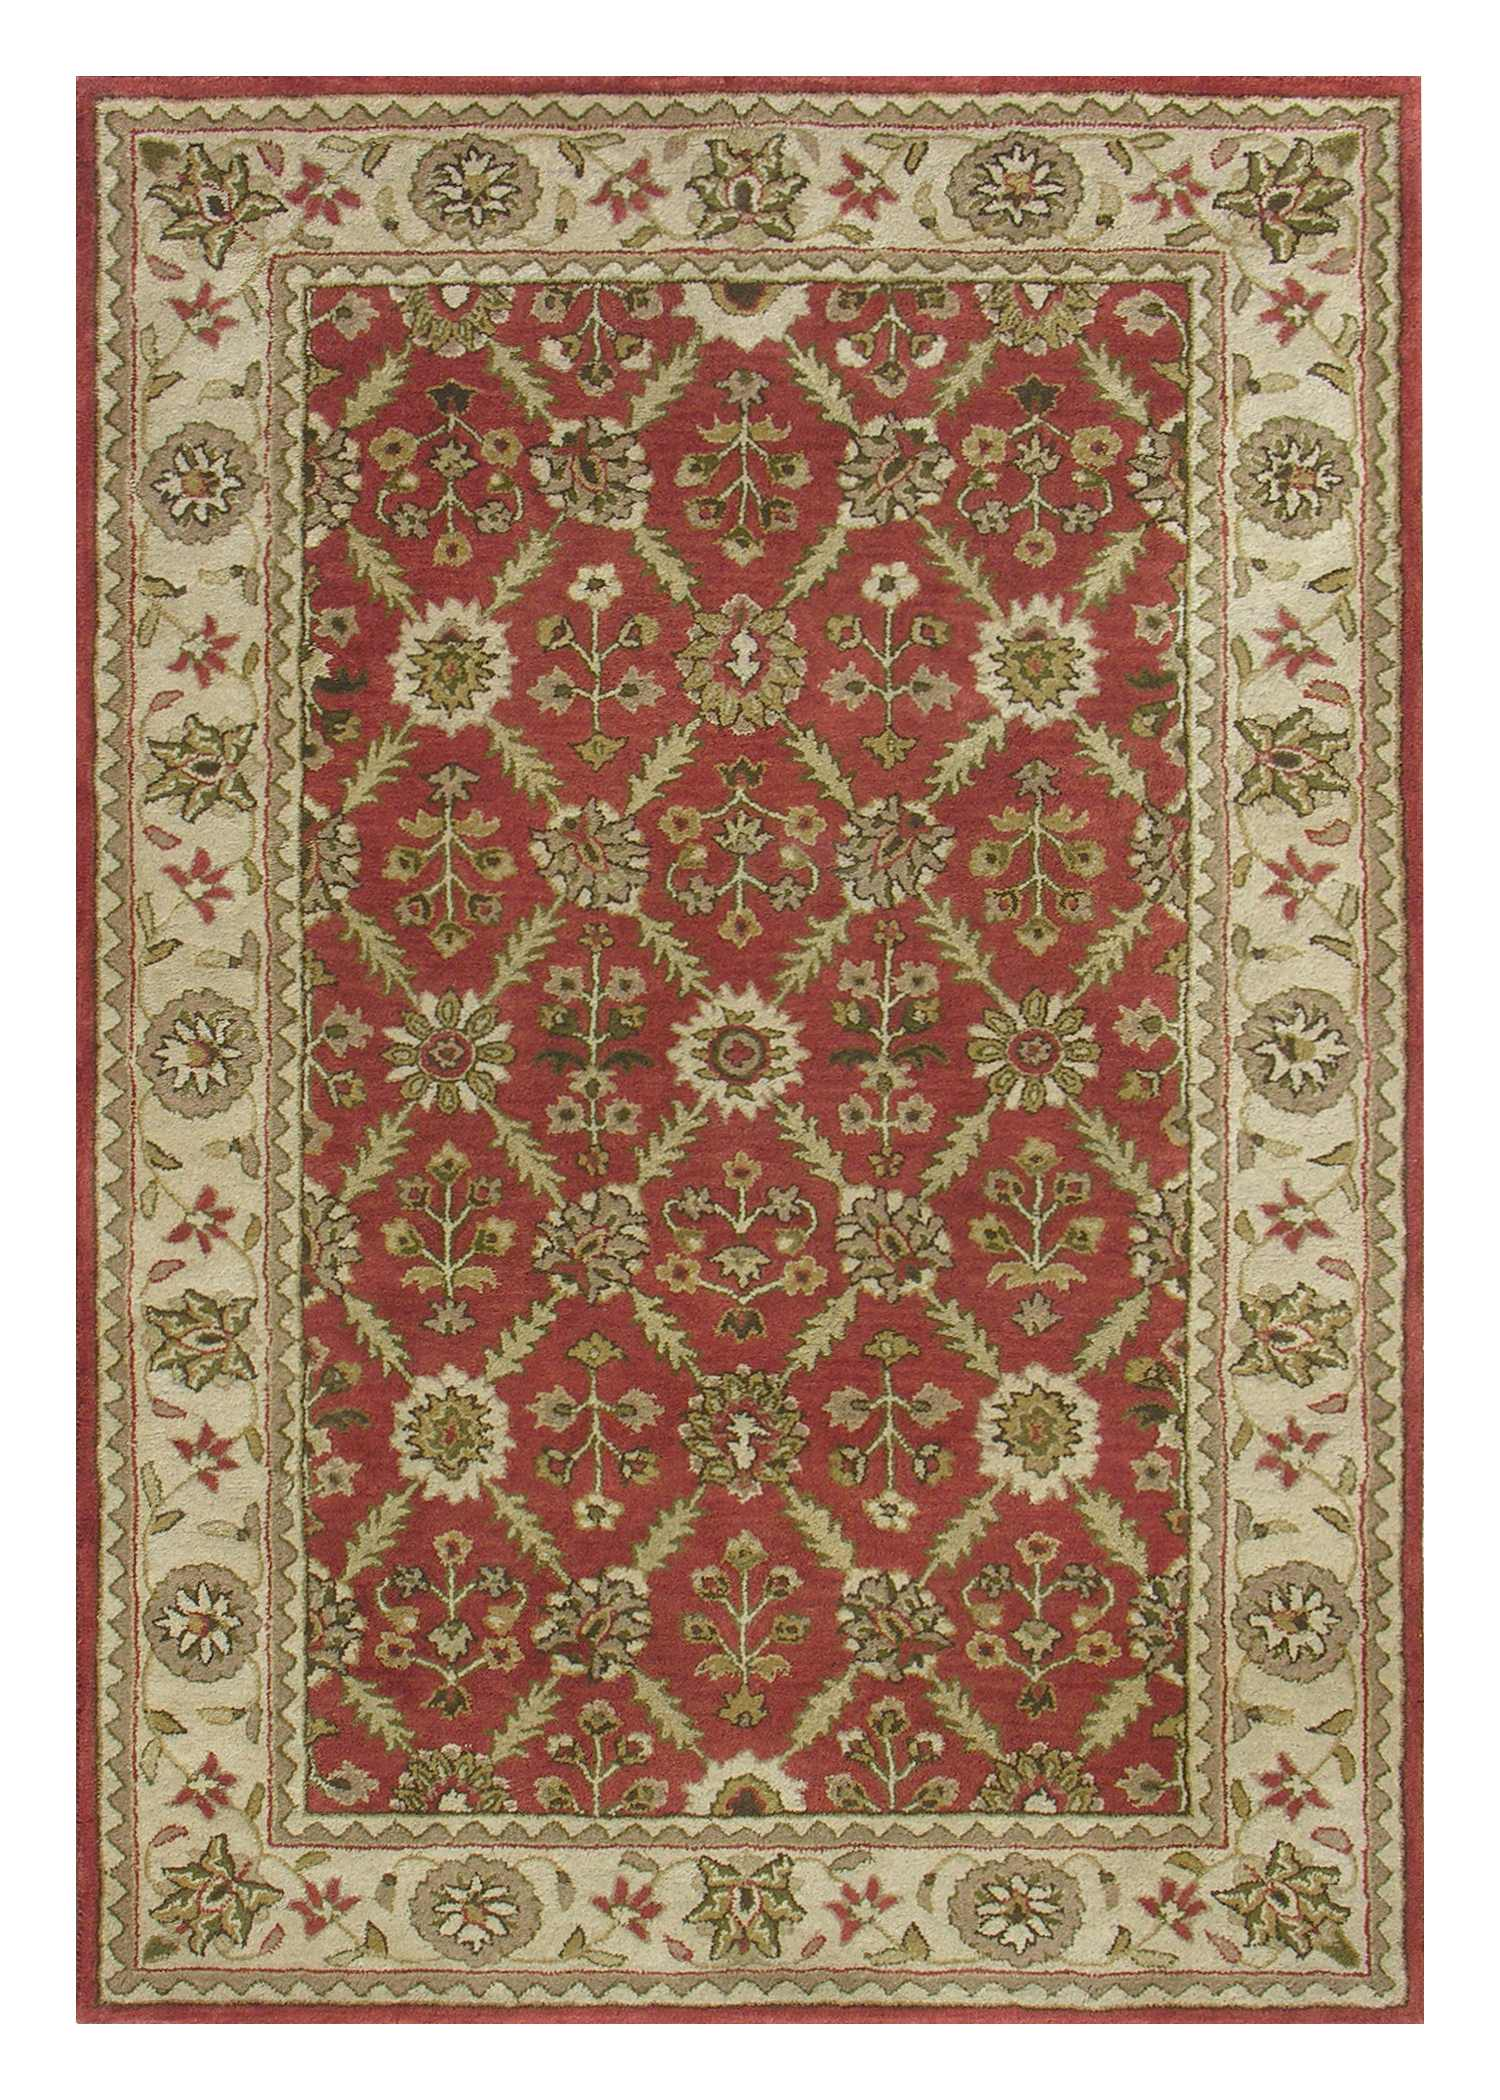 Dynamic Rugs Charisma Classic Red/ivory 1413 Area Rug